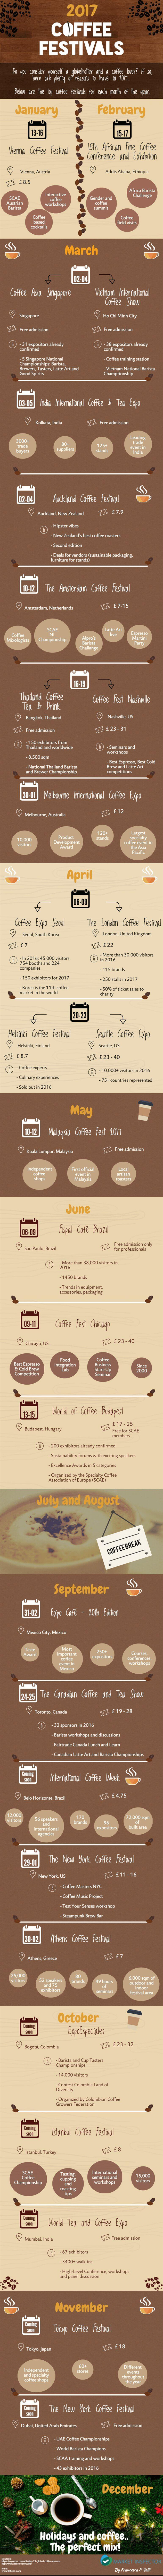 Coffee Festivals Infographic